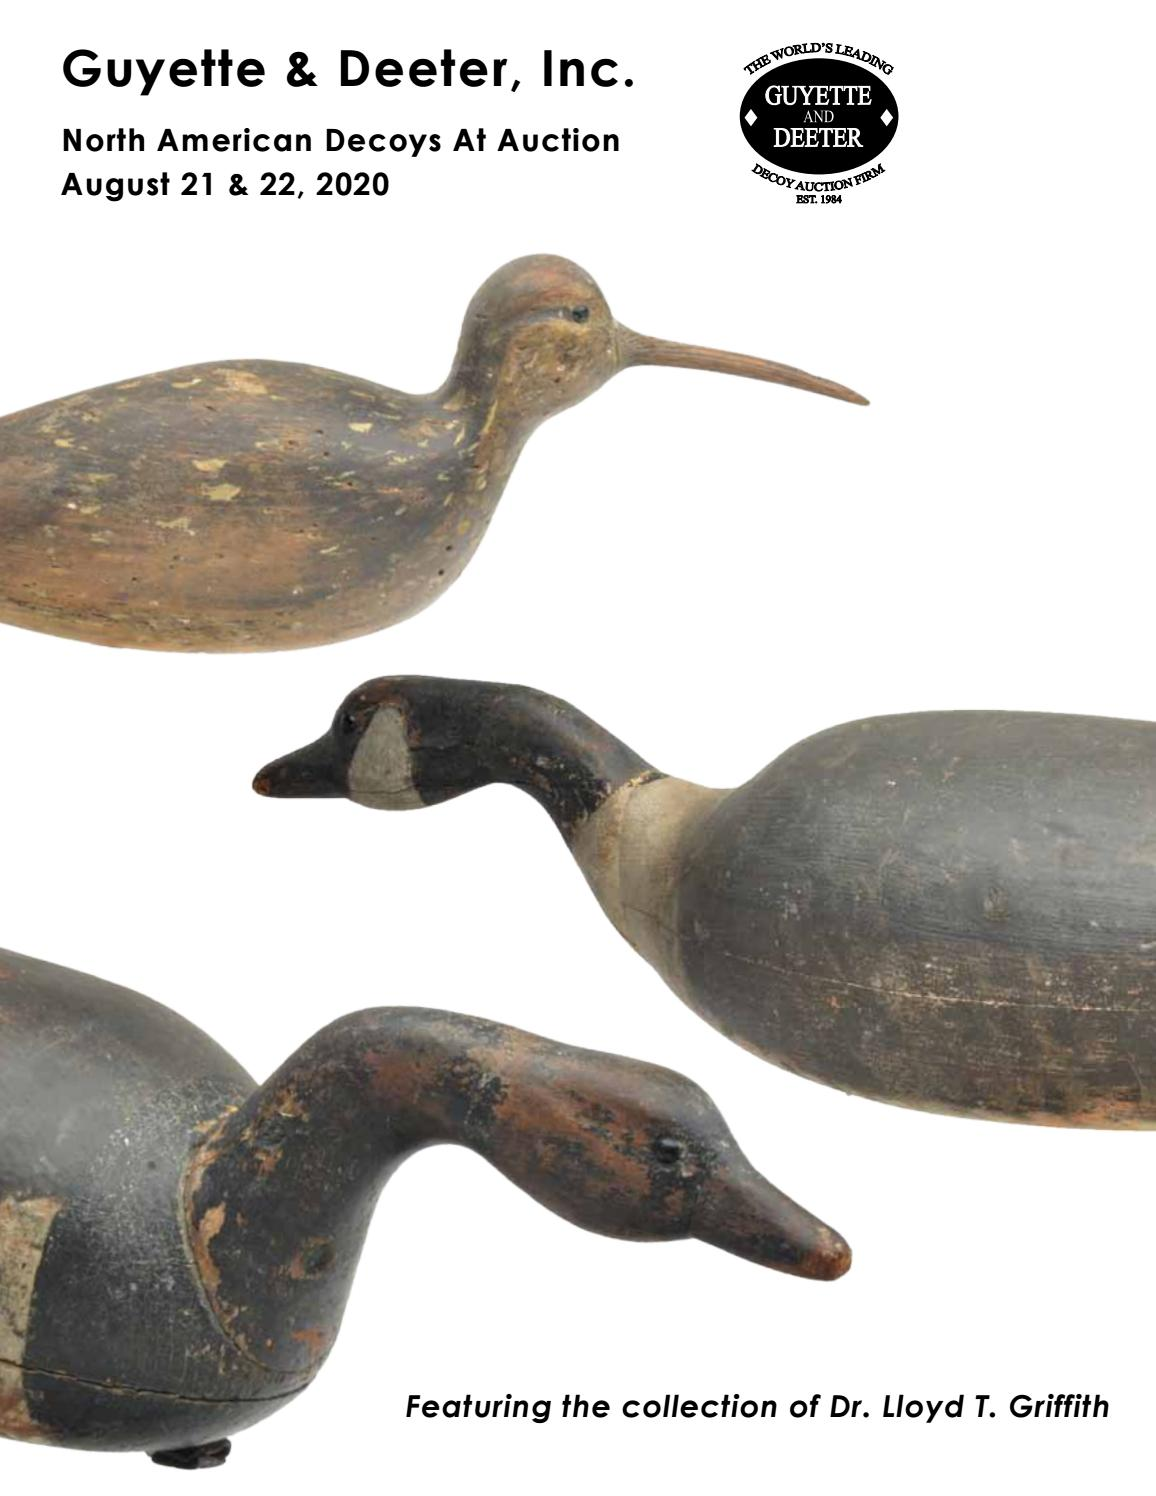 North American Decoys At Auction August 21 22 2020 By Guyette Deeter Issuu